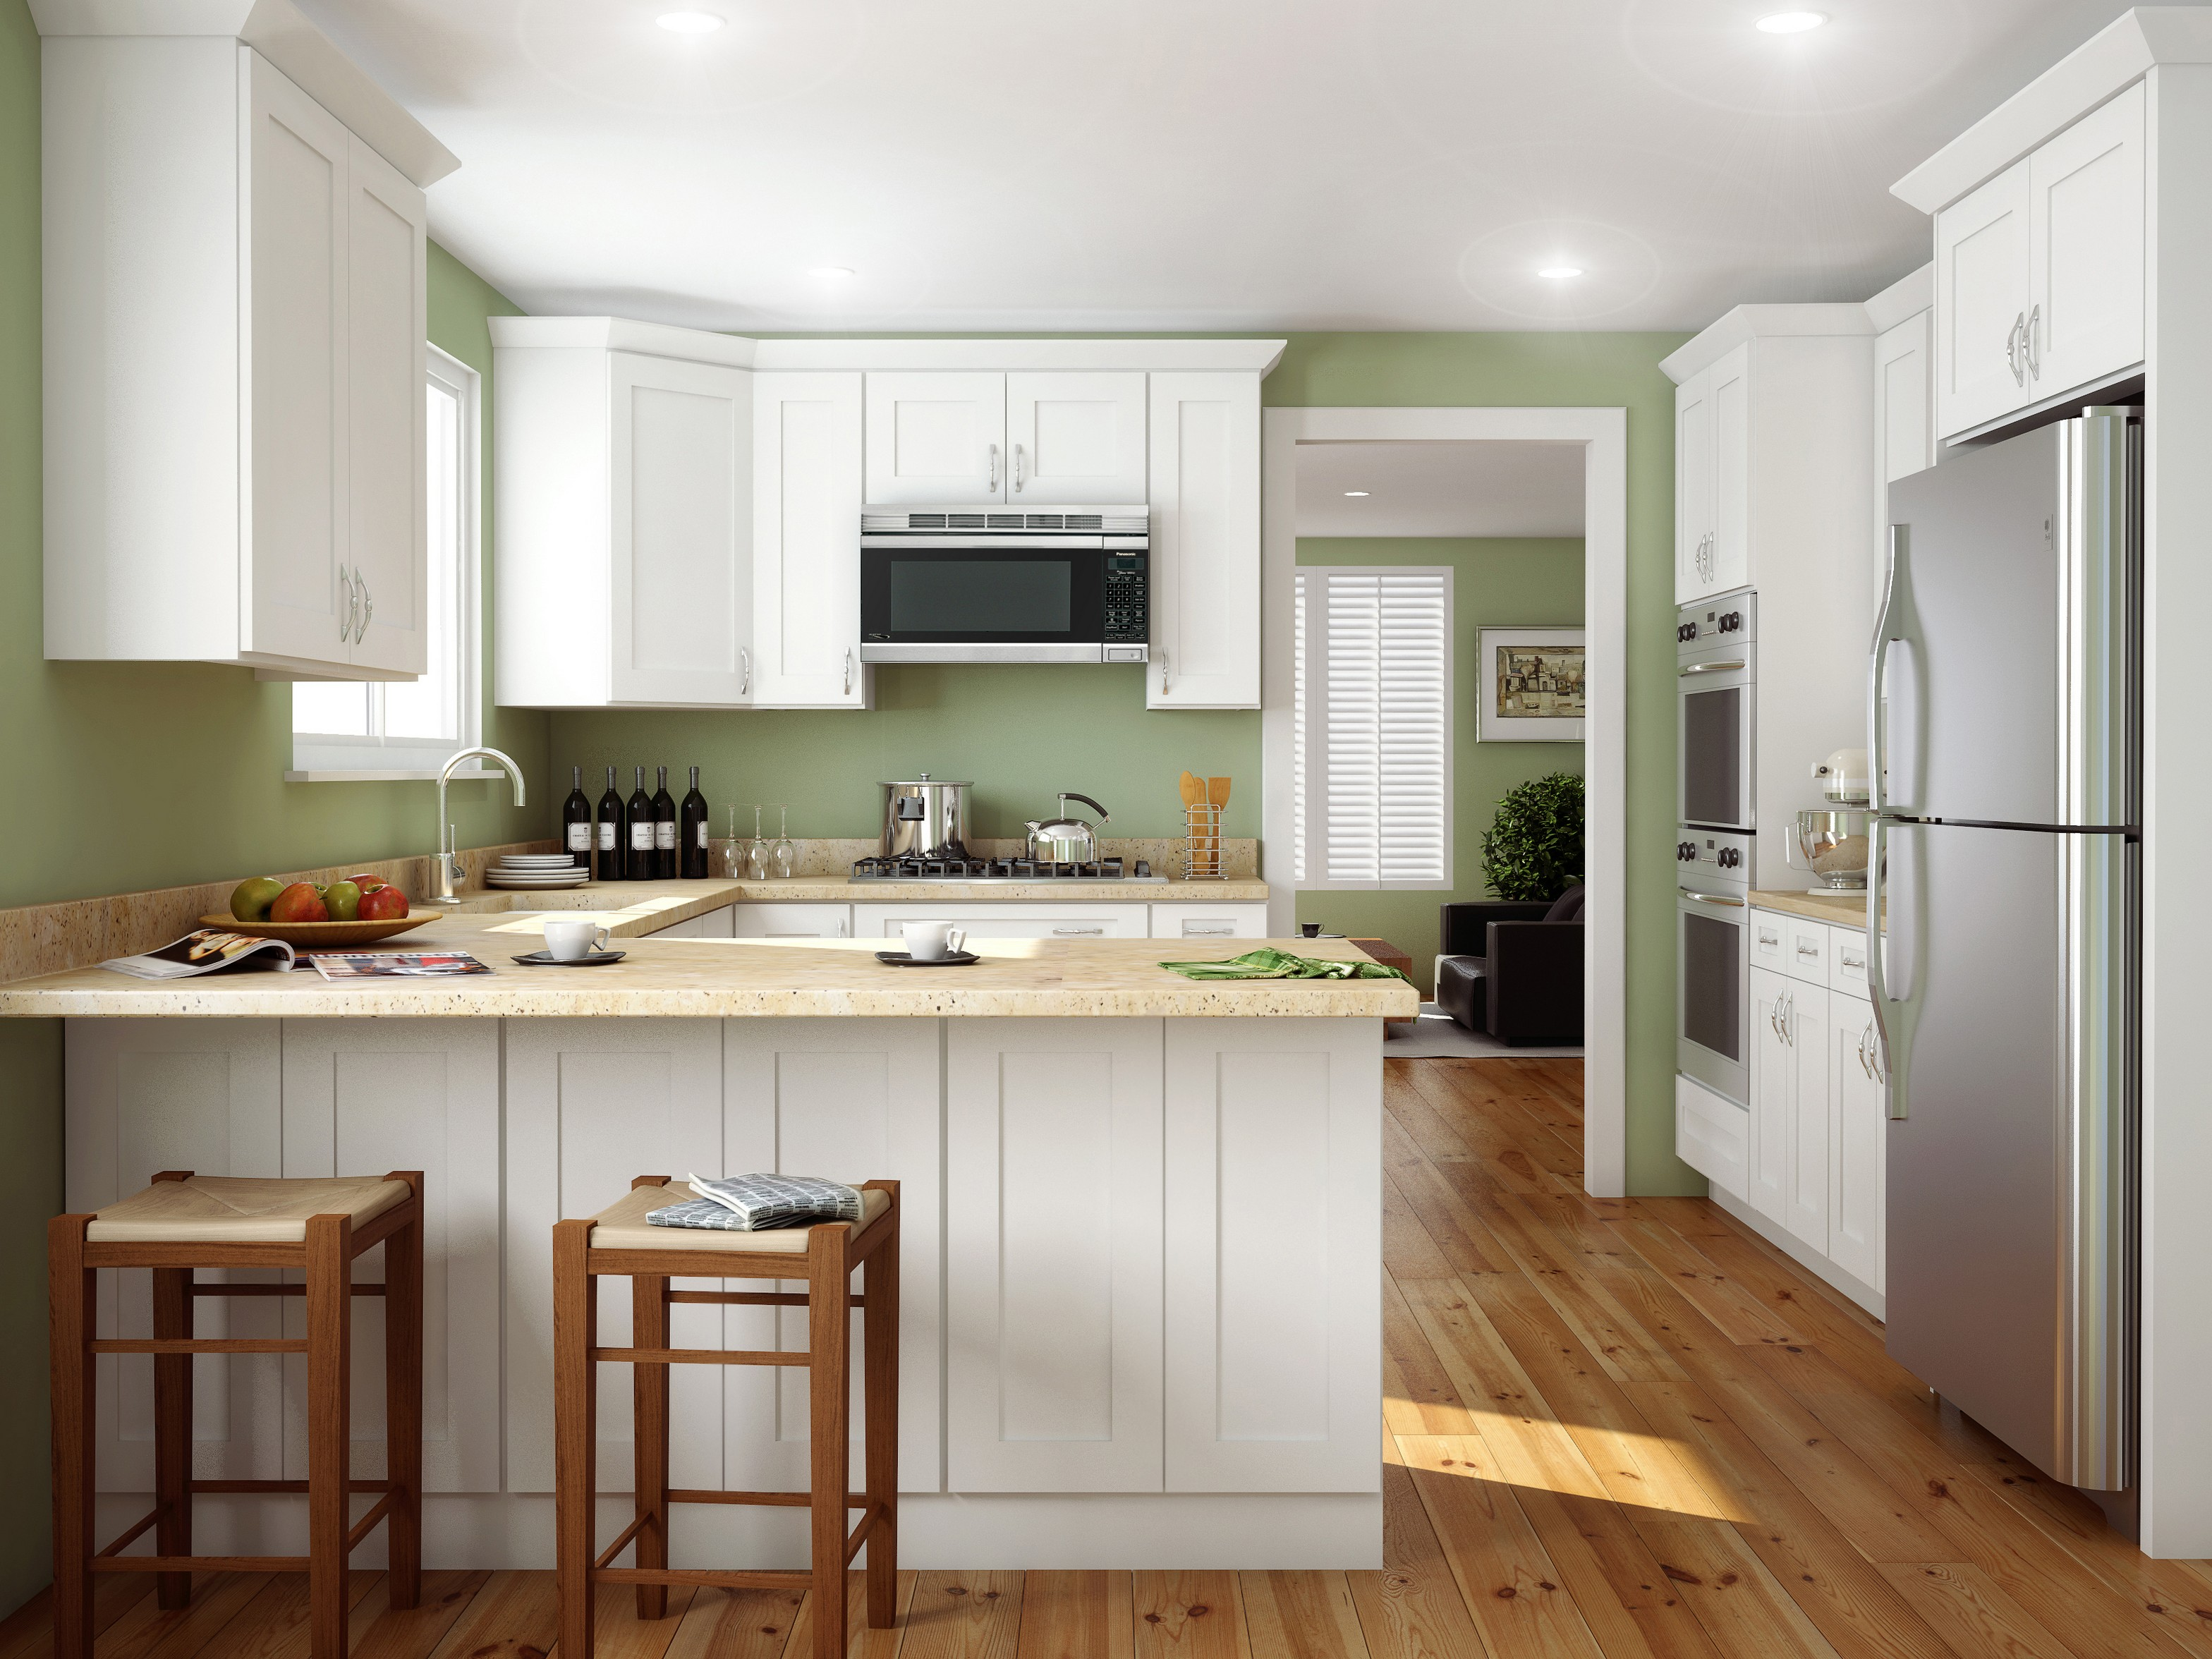 american classics kitchen cabinets 18 inch deep 5 common design problems to fix during your remodel